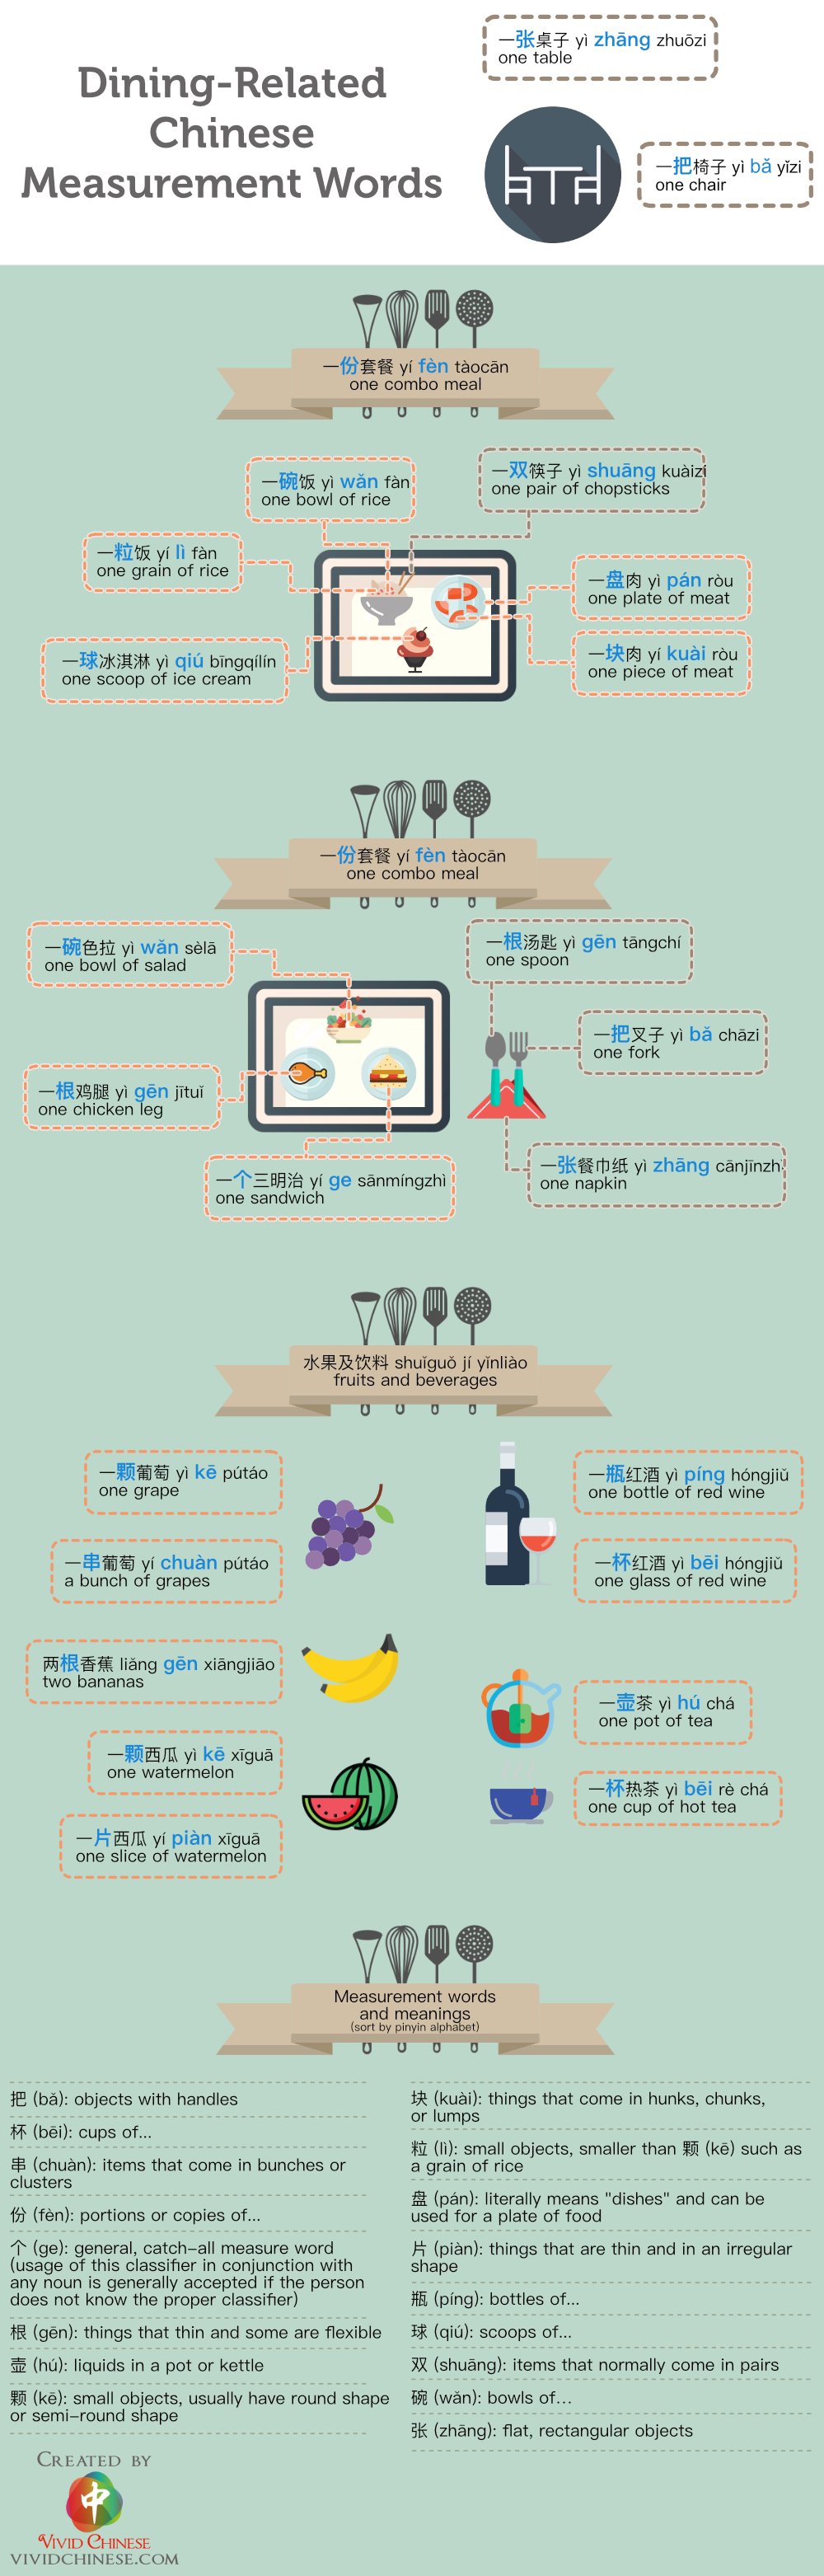 Dining-Related Chinese Measurement Words Simplified Chinese Version